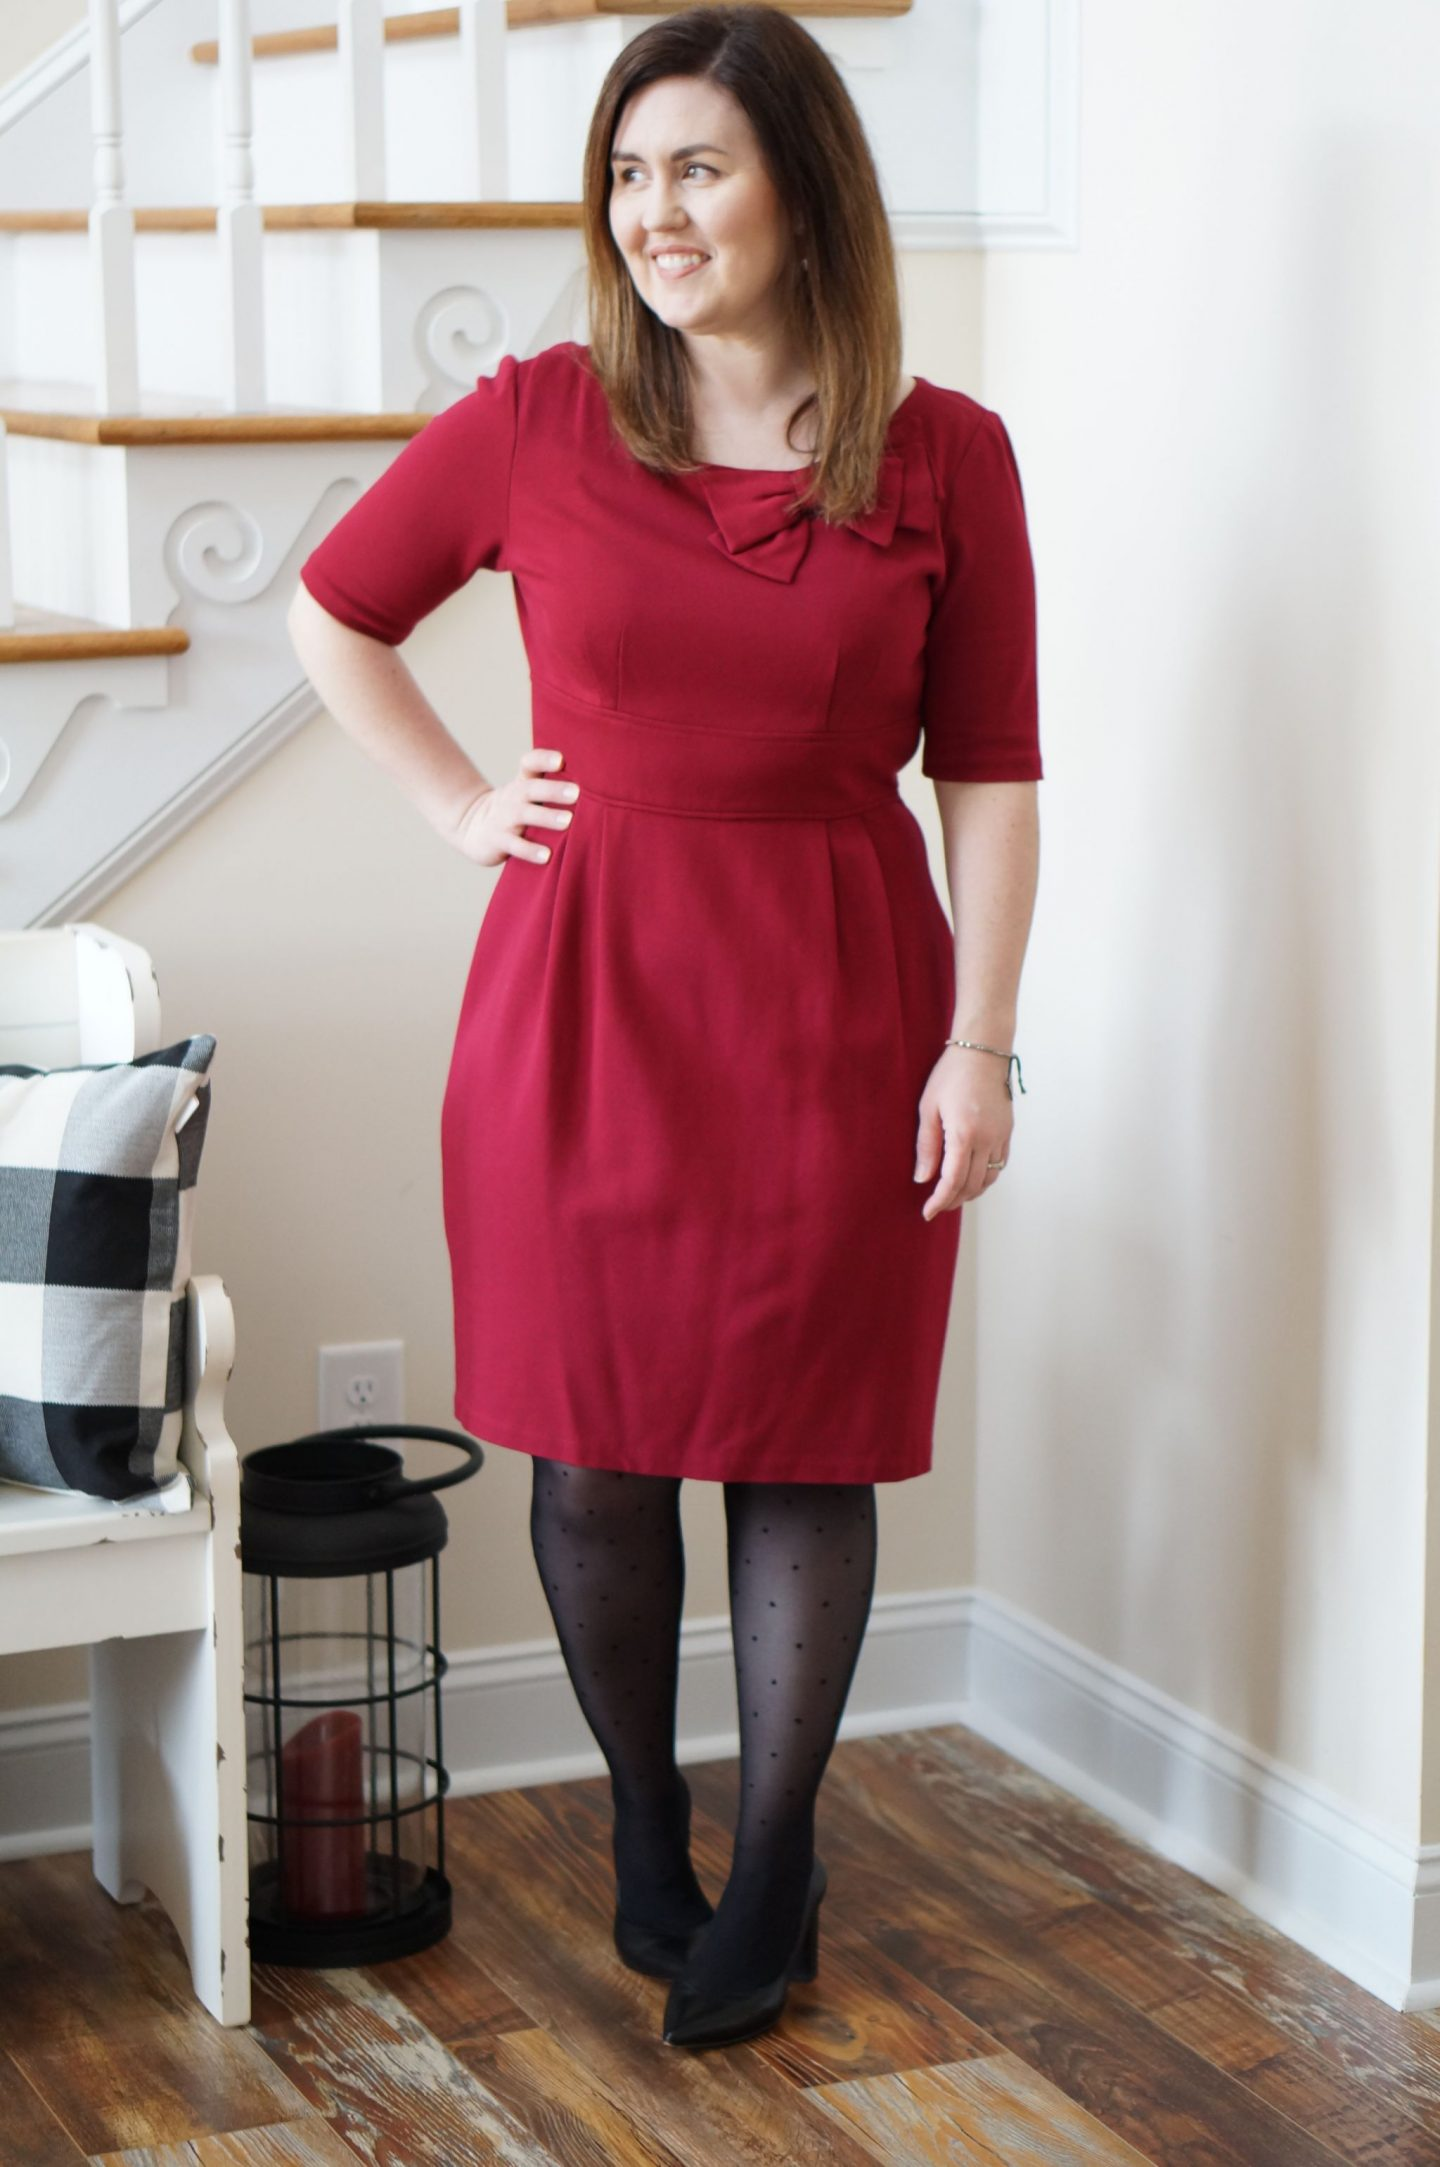 North Carolina blogger Rebecca Lately shares the sustainable Swedish Stockings line. Find out how they are reducing waste in the hosiery industry.